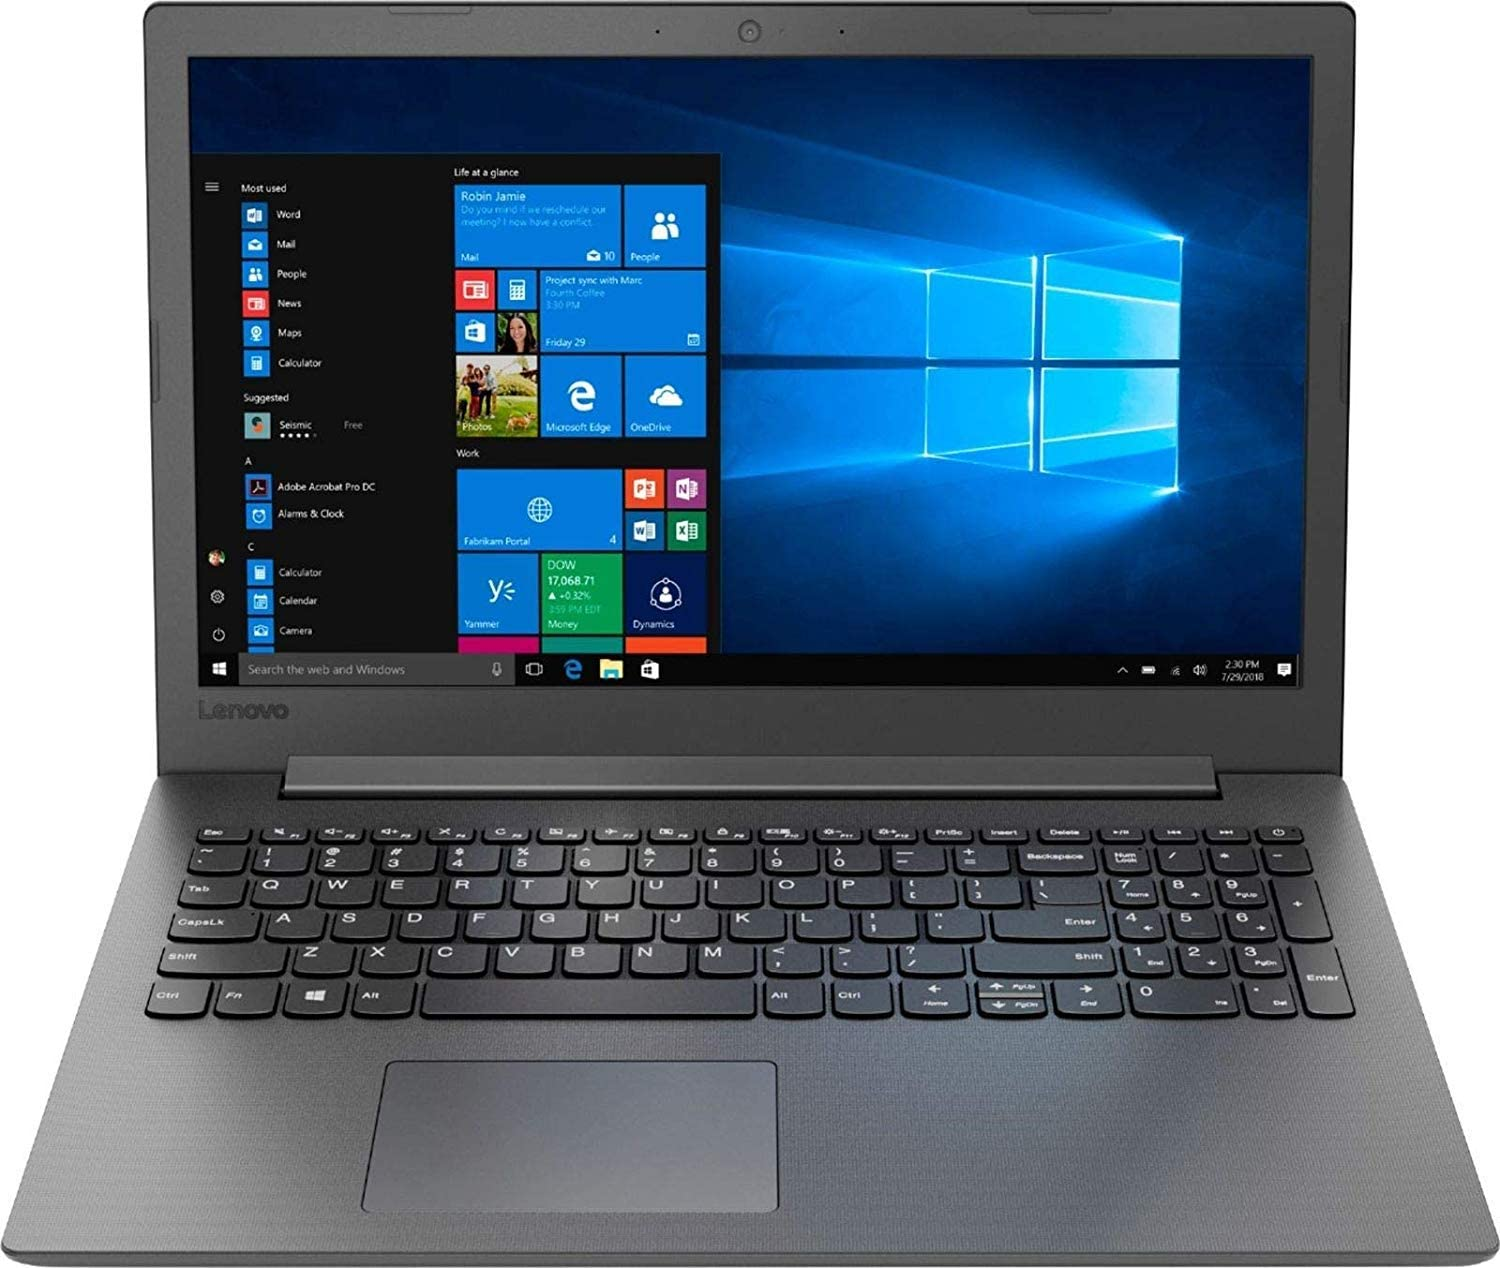 "2019 Newest Lenovo 130-15AST 15.6"" Laptop AMD A9-Series, 4GB DDR4 RAM, 128GB SSD, Wi-Fi, HDMI, Bluetooth, Windows 10, Black"